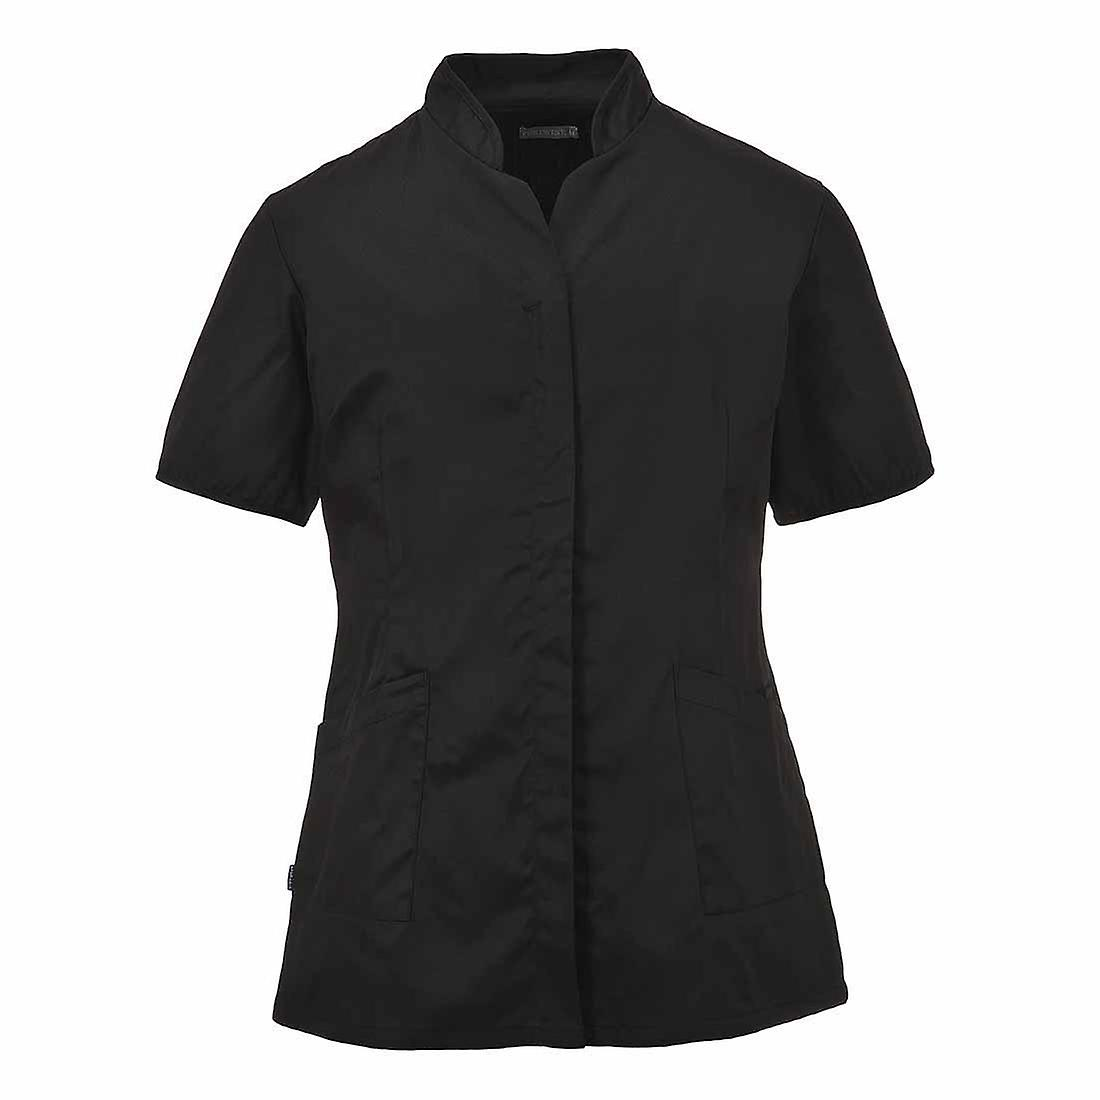 Portwest - Ladies Premier Nursing Heath Care Workwear Tunic Jacket Top